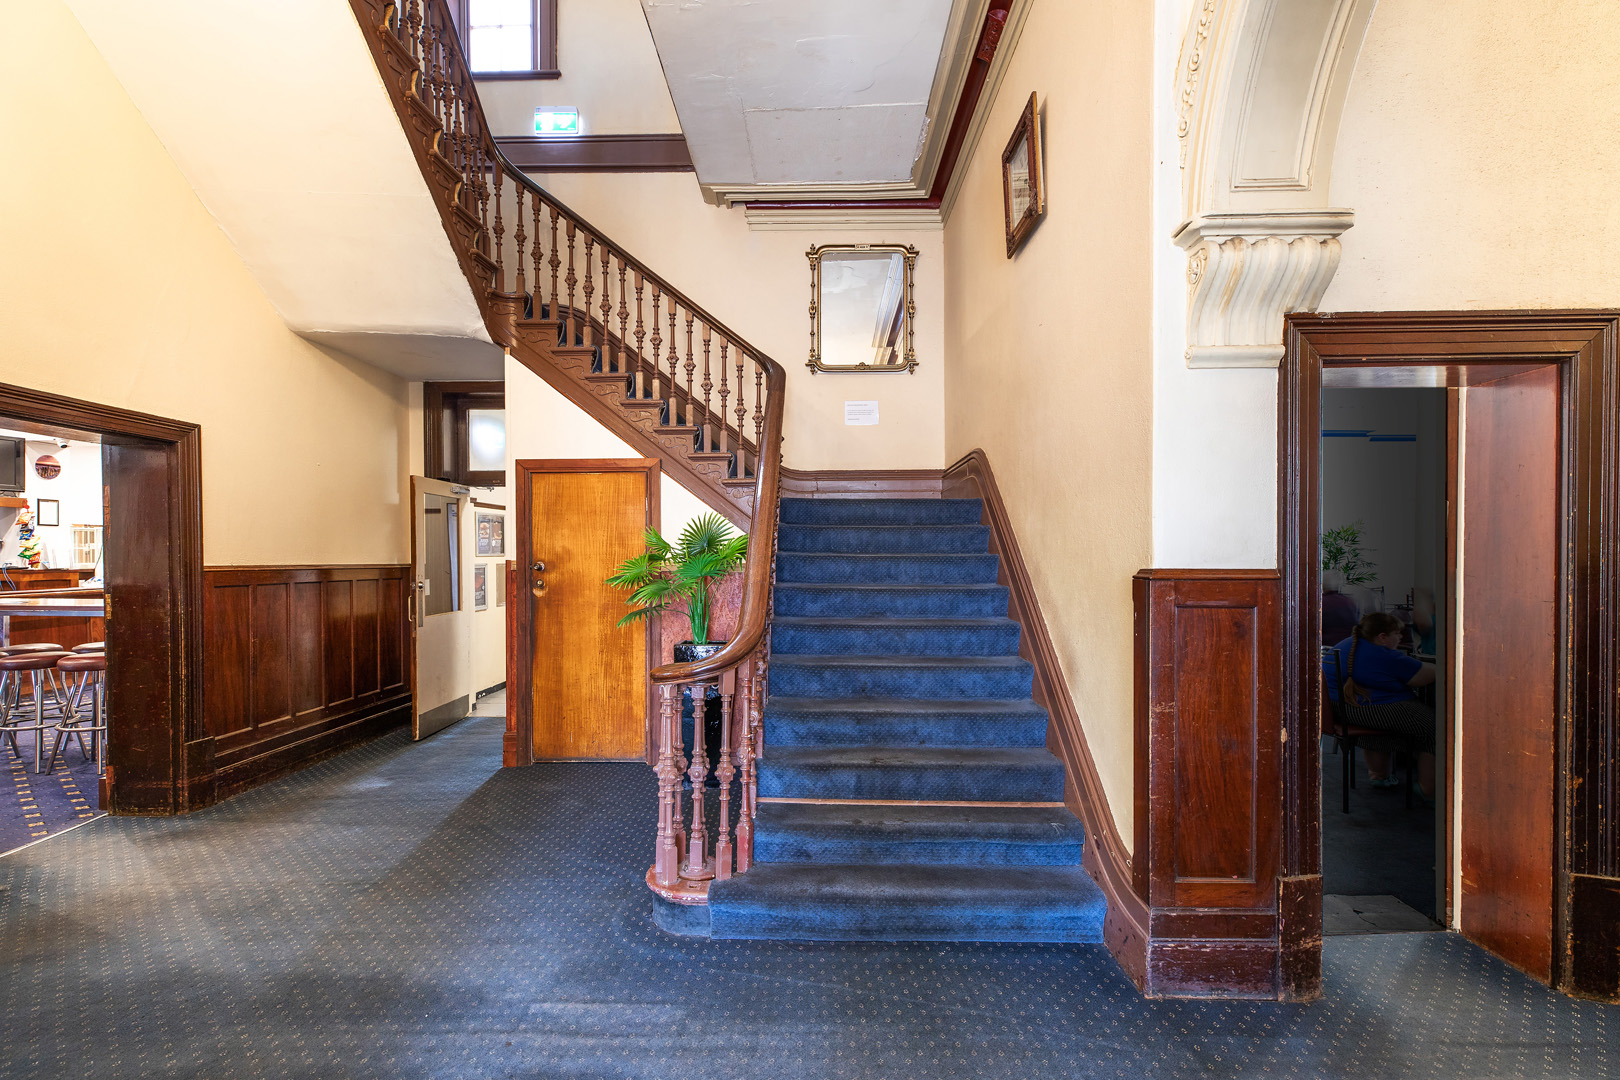 the-flinders-hotel-motel-staircase-hotel-rooms-pub